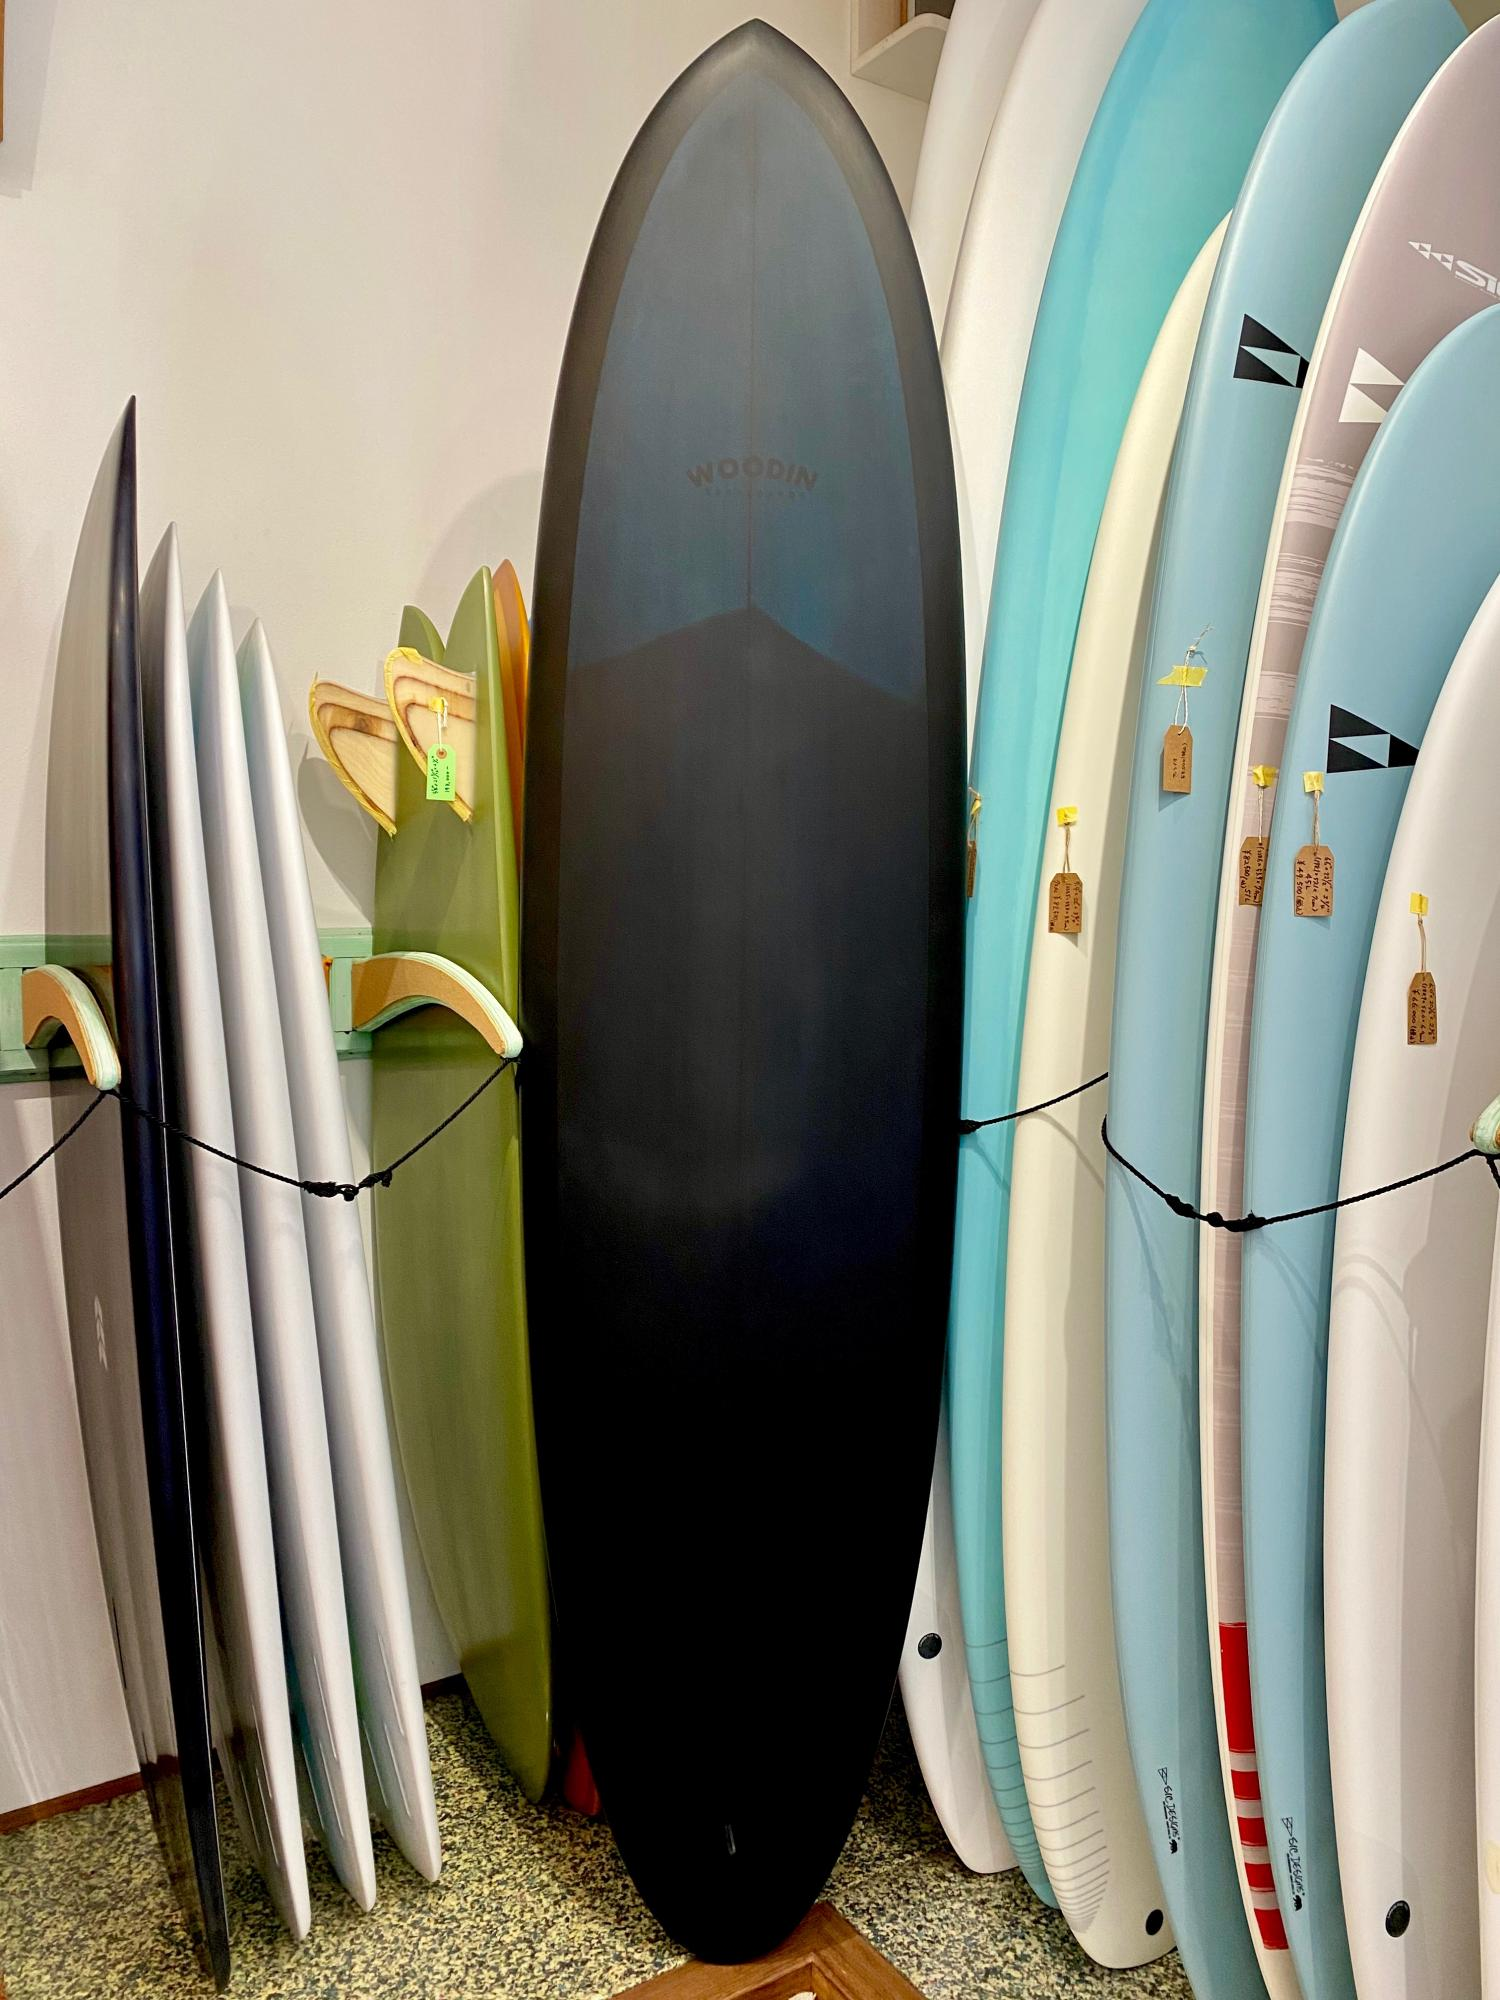 Gypsy Eye model 7.6 WOODIN SURFBOARDS